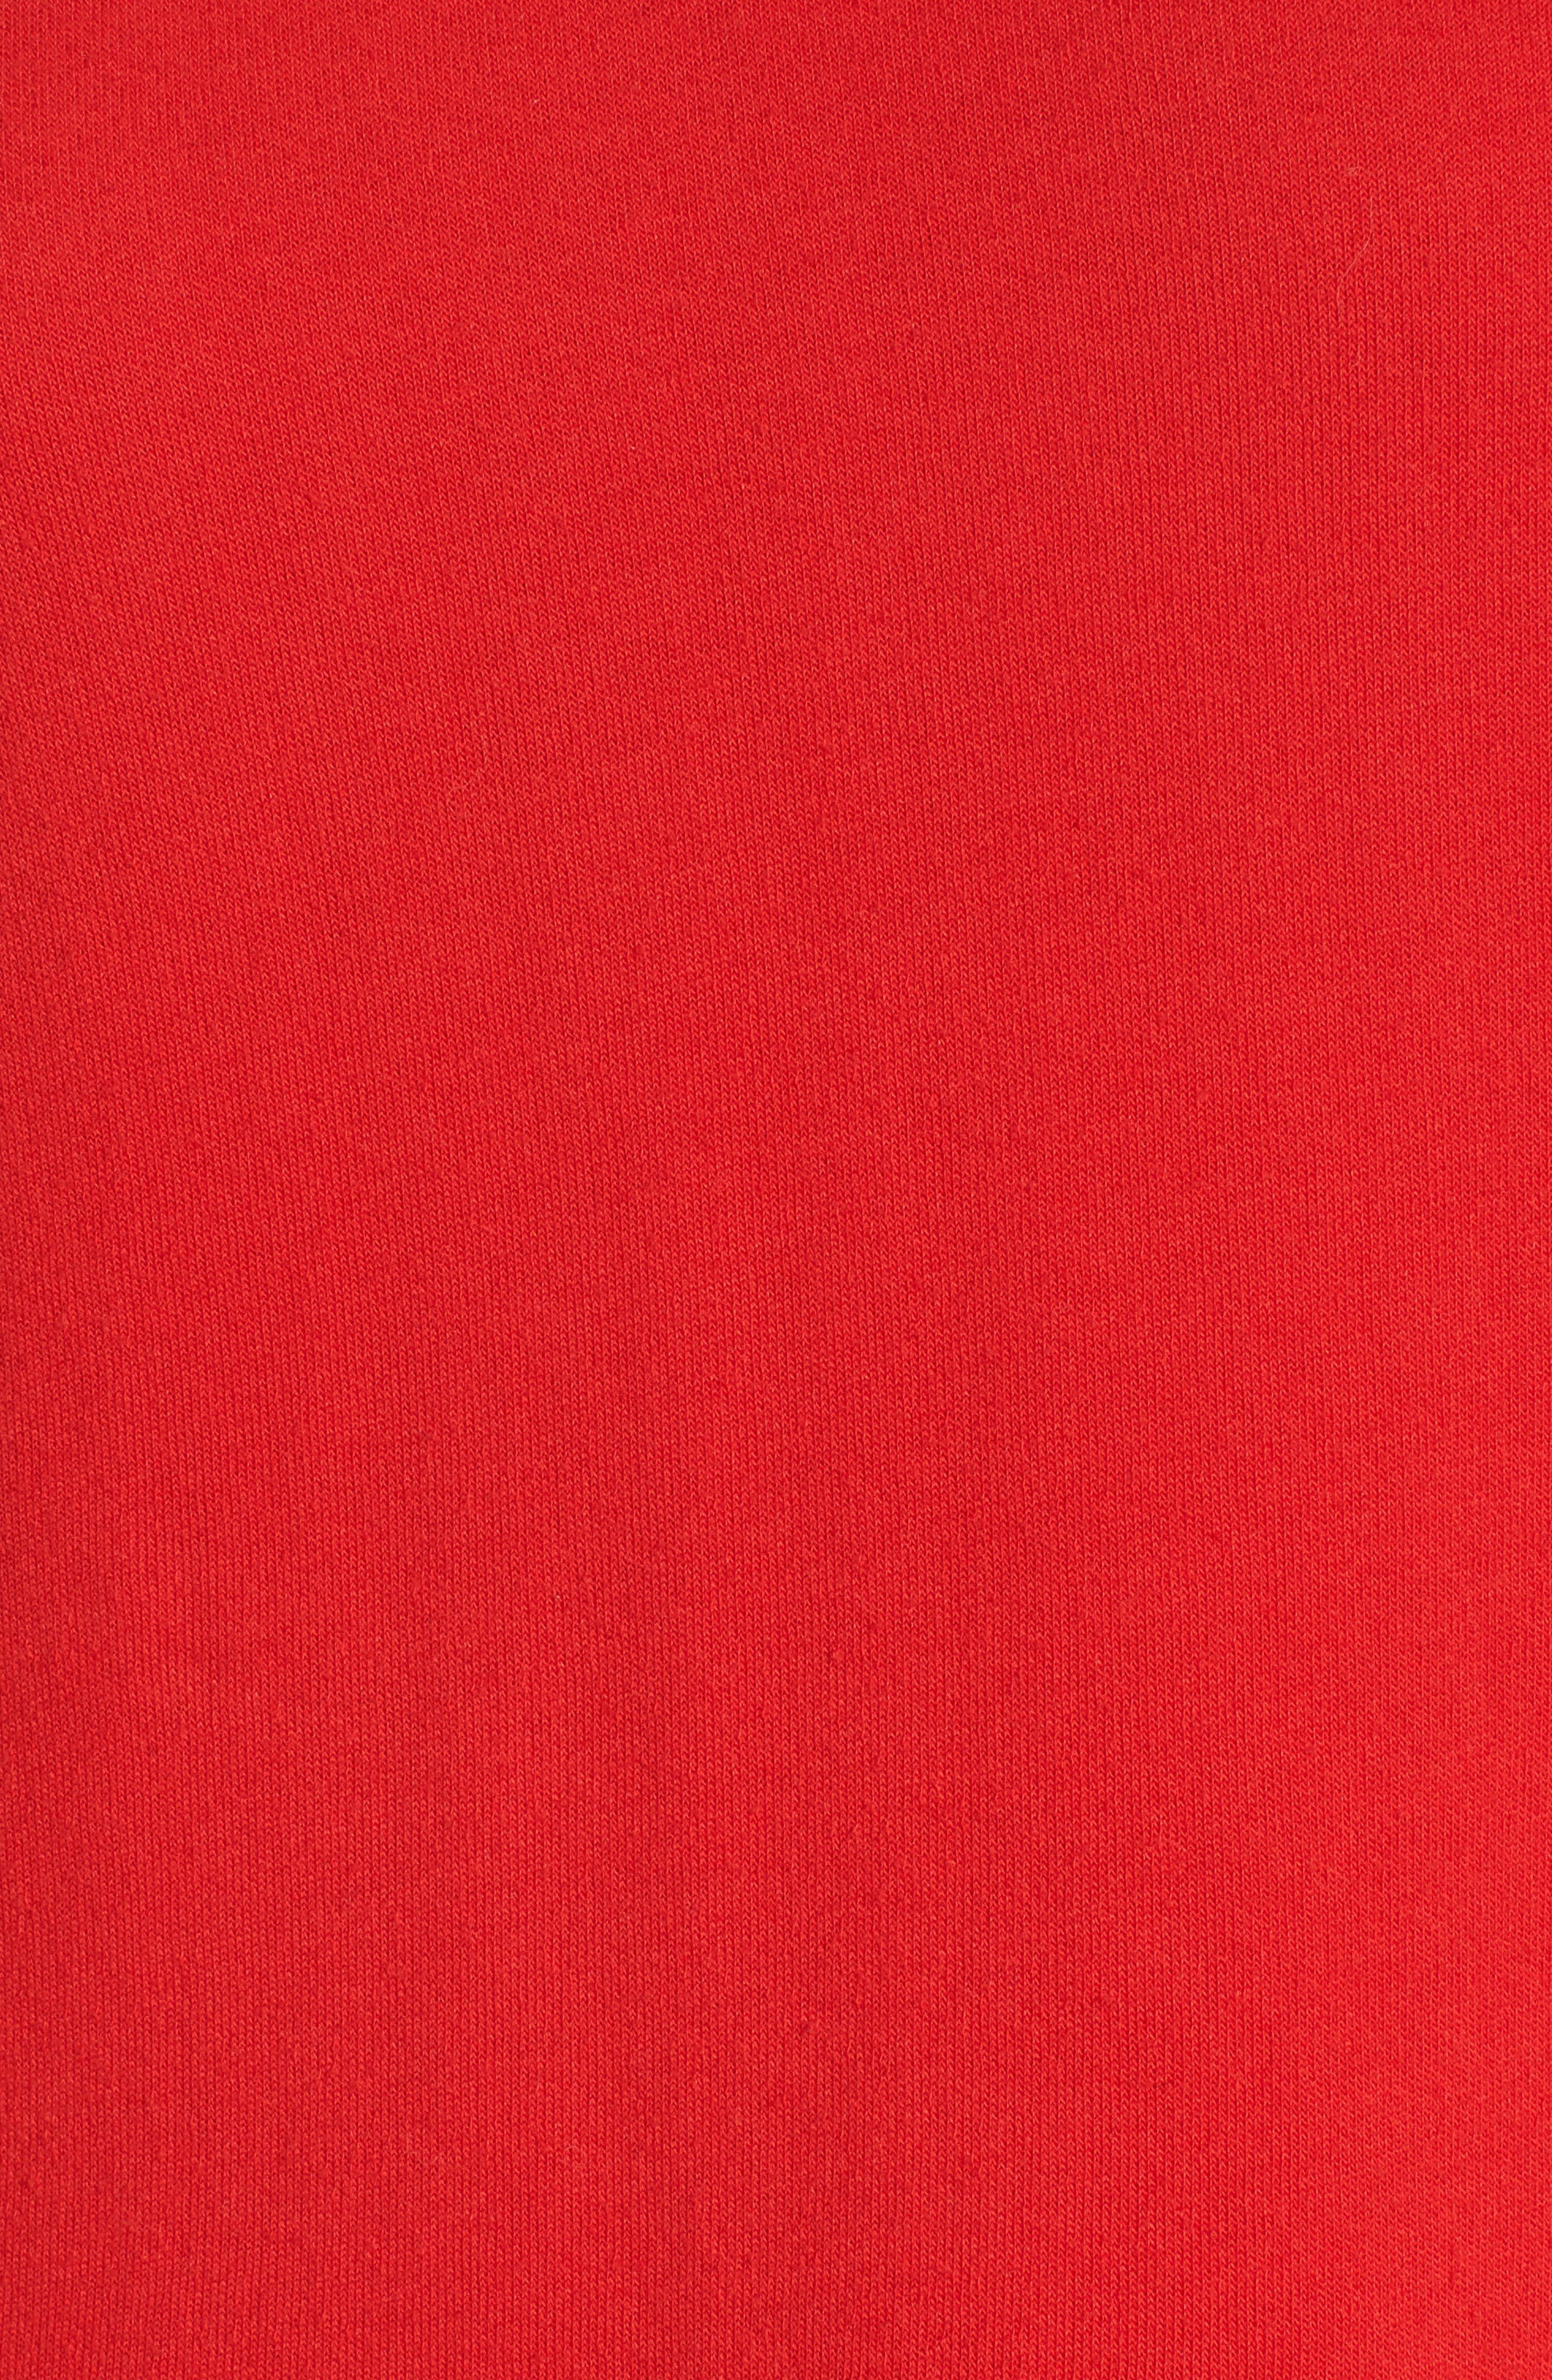 Hollywood Tipped Hoodie,                             Alternate thumbnail 5, color,                             Formula 1 Red